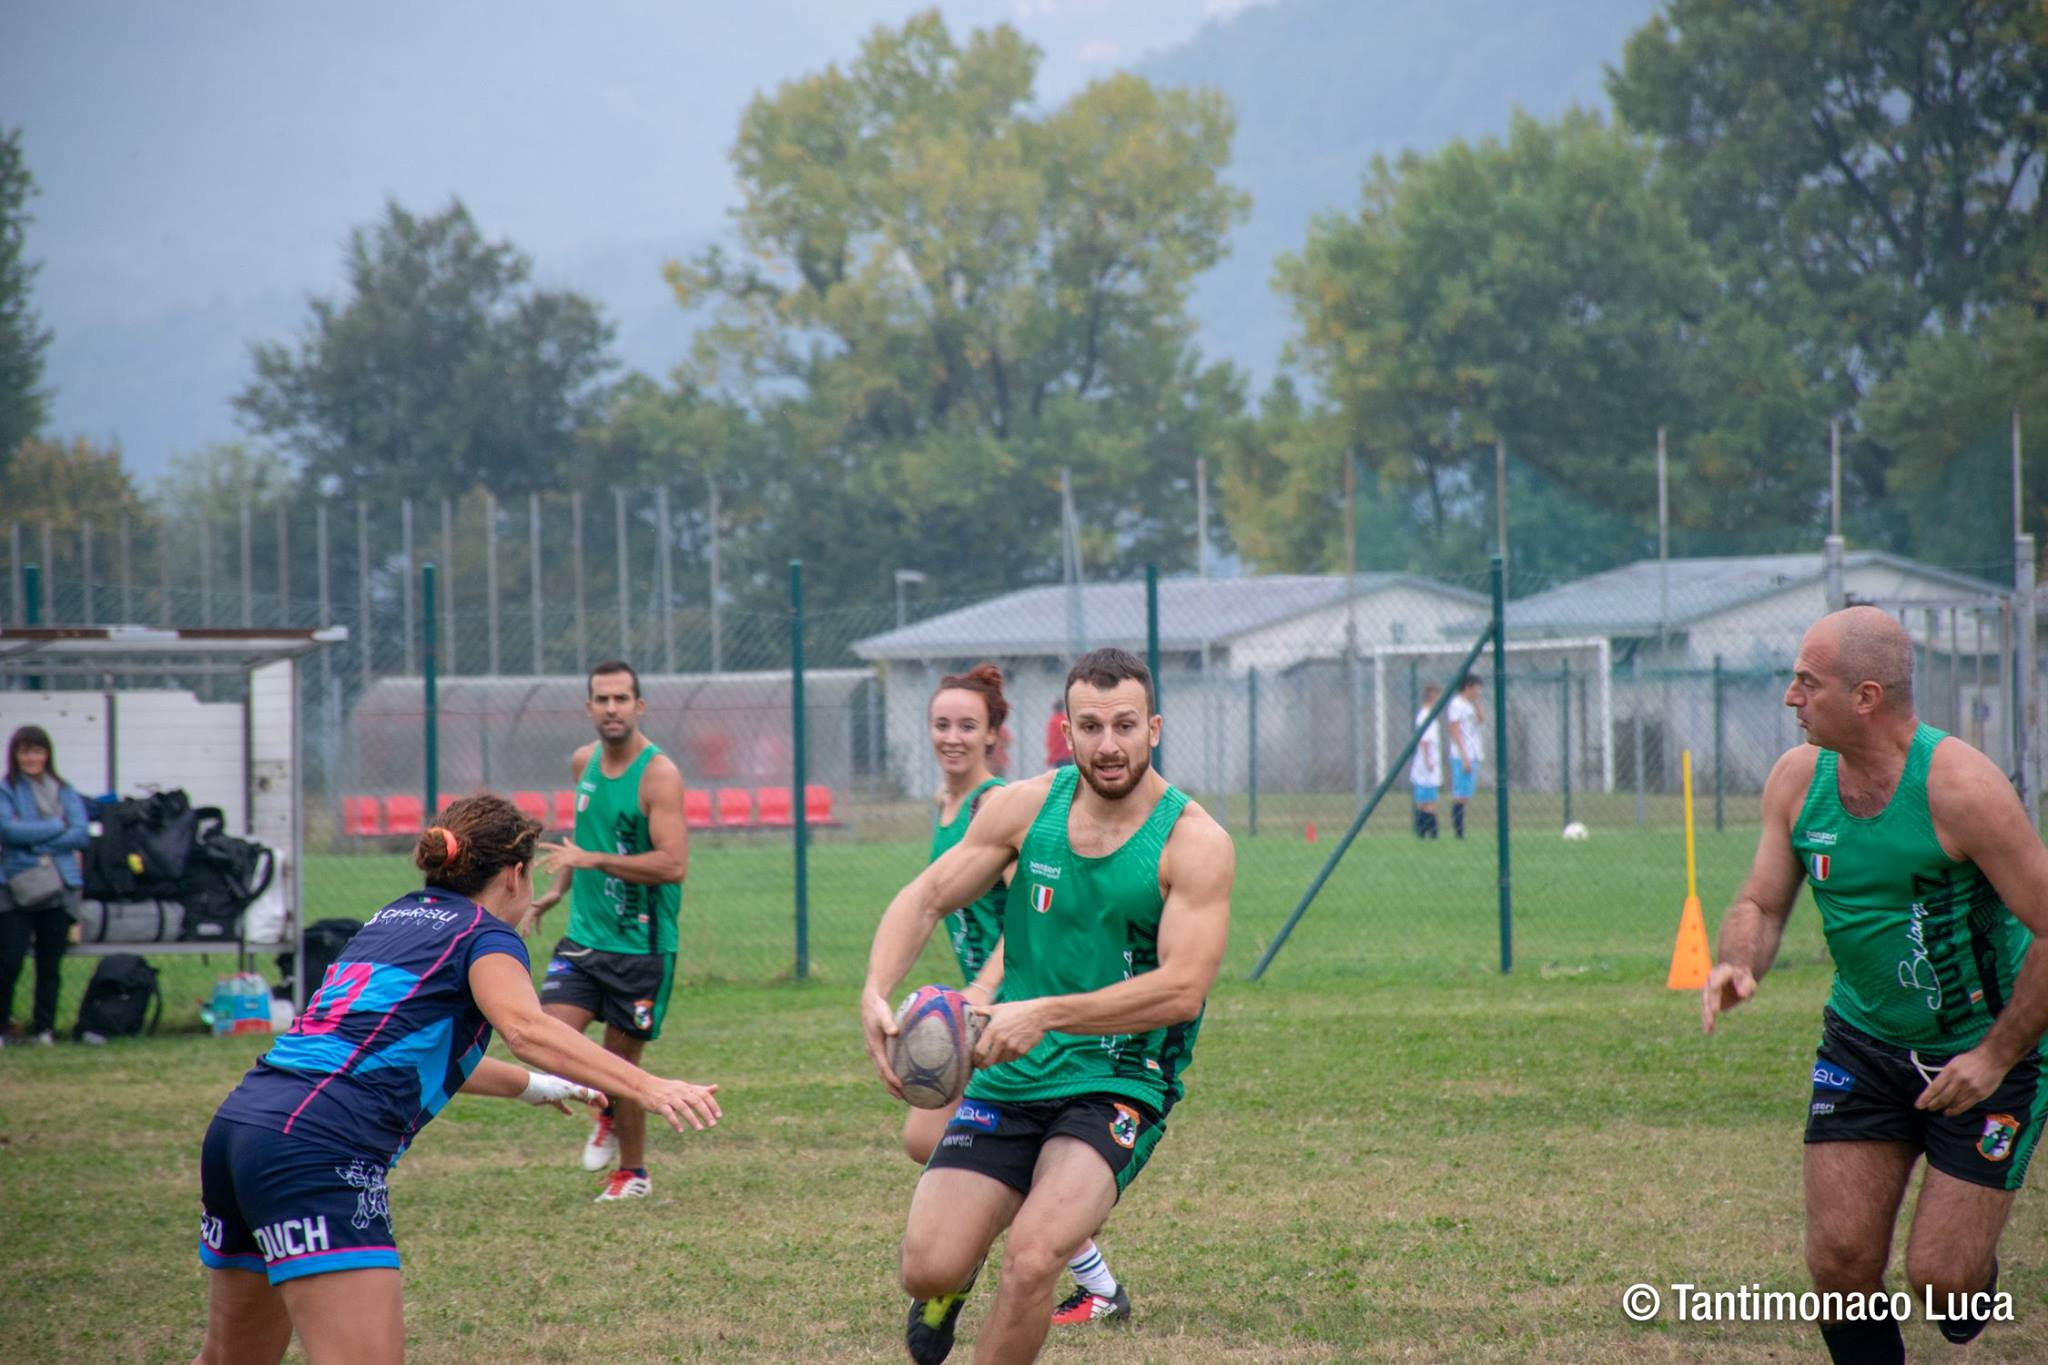 rugby touch lecco&tocco 7 ottobre 2018 (10)